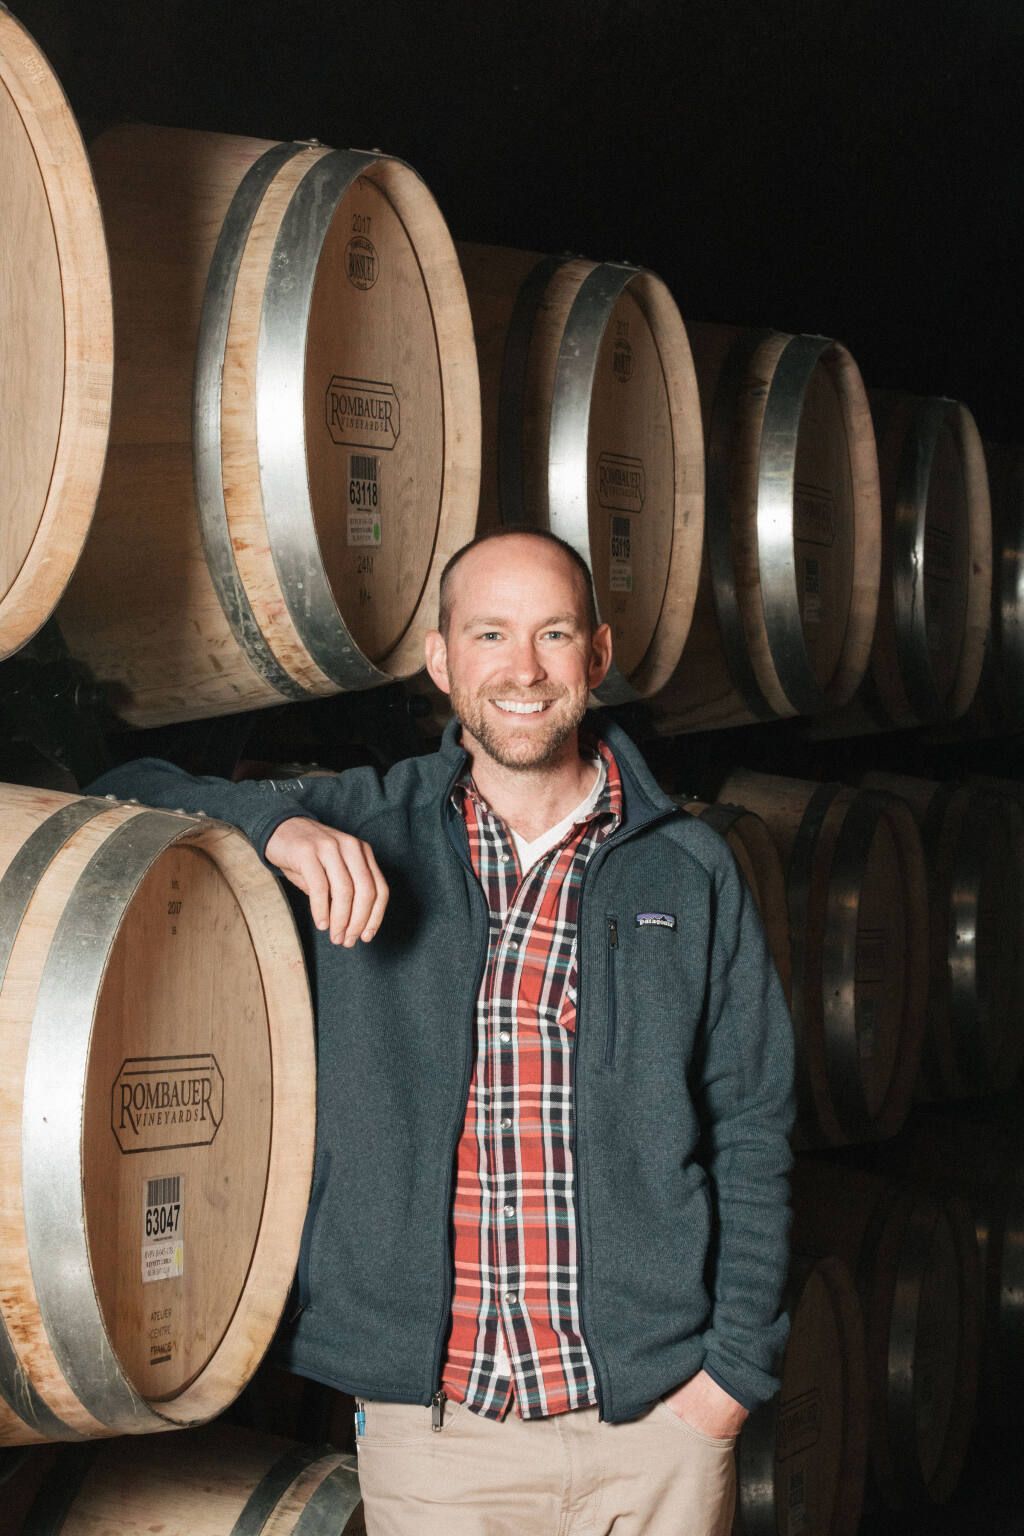 Rombauer Vineyards has promoted longtime winemaker Richie Allen to to vice president of viticulture and winemaking.